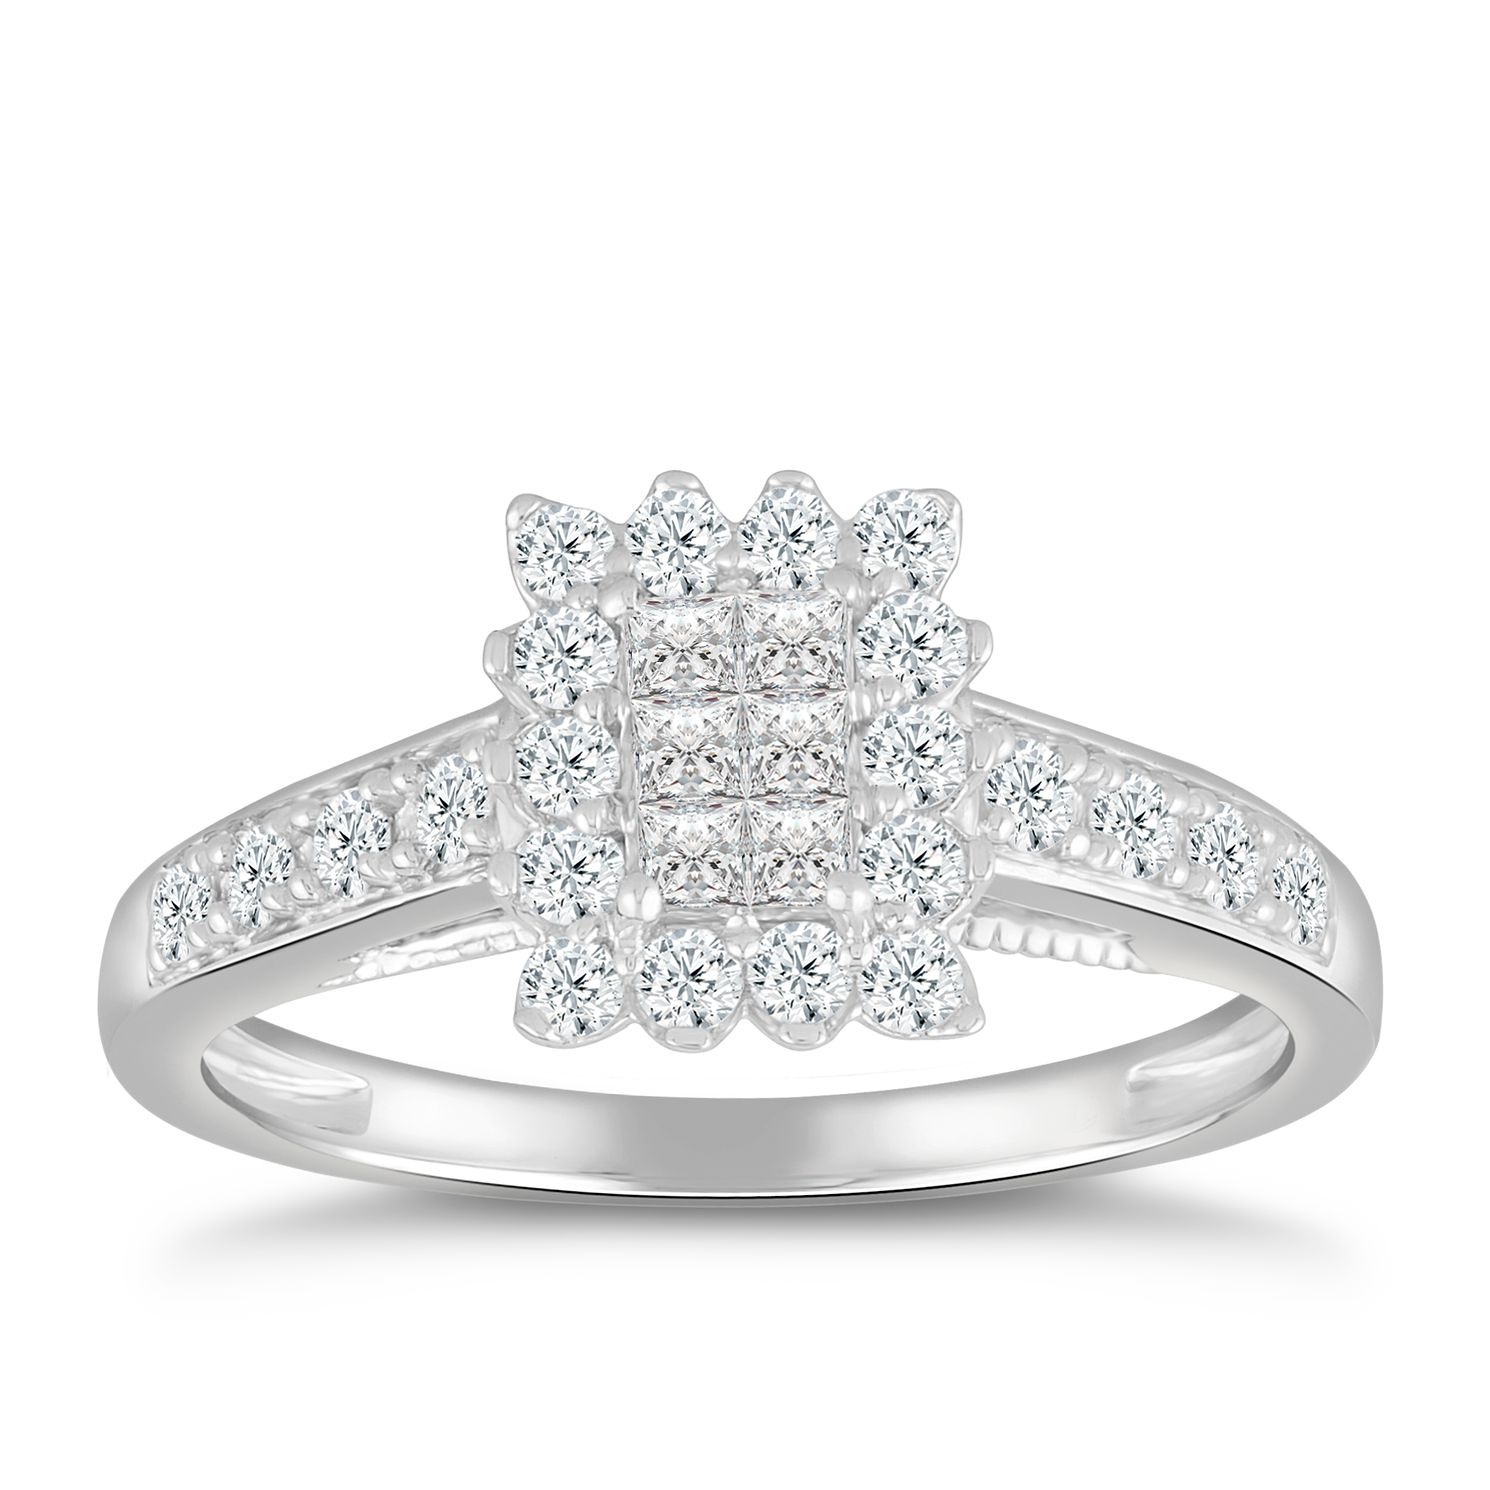 Princessa 9ct White Gold 1/2ct Diamond Cluster Ring - Product number 5065046